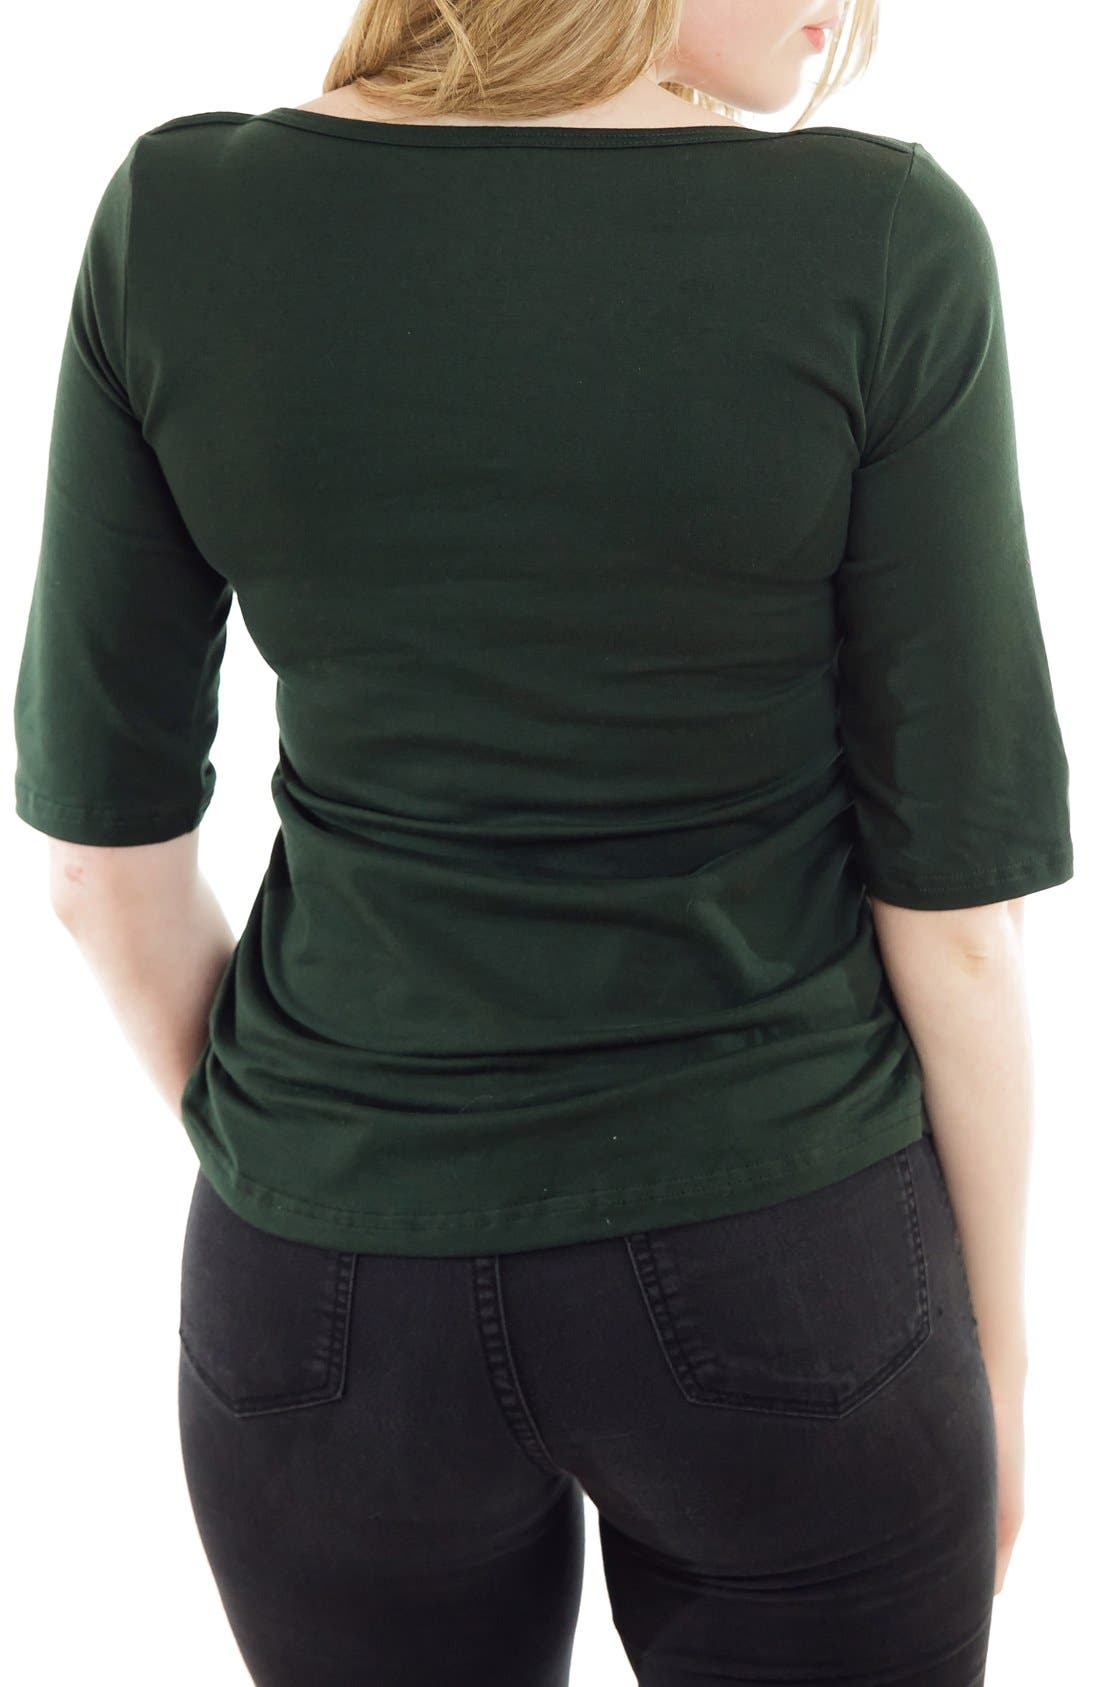 Boatneck Nursing Top,                             Alternate thumbnail 2, color,                             Green Forest